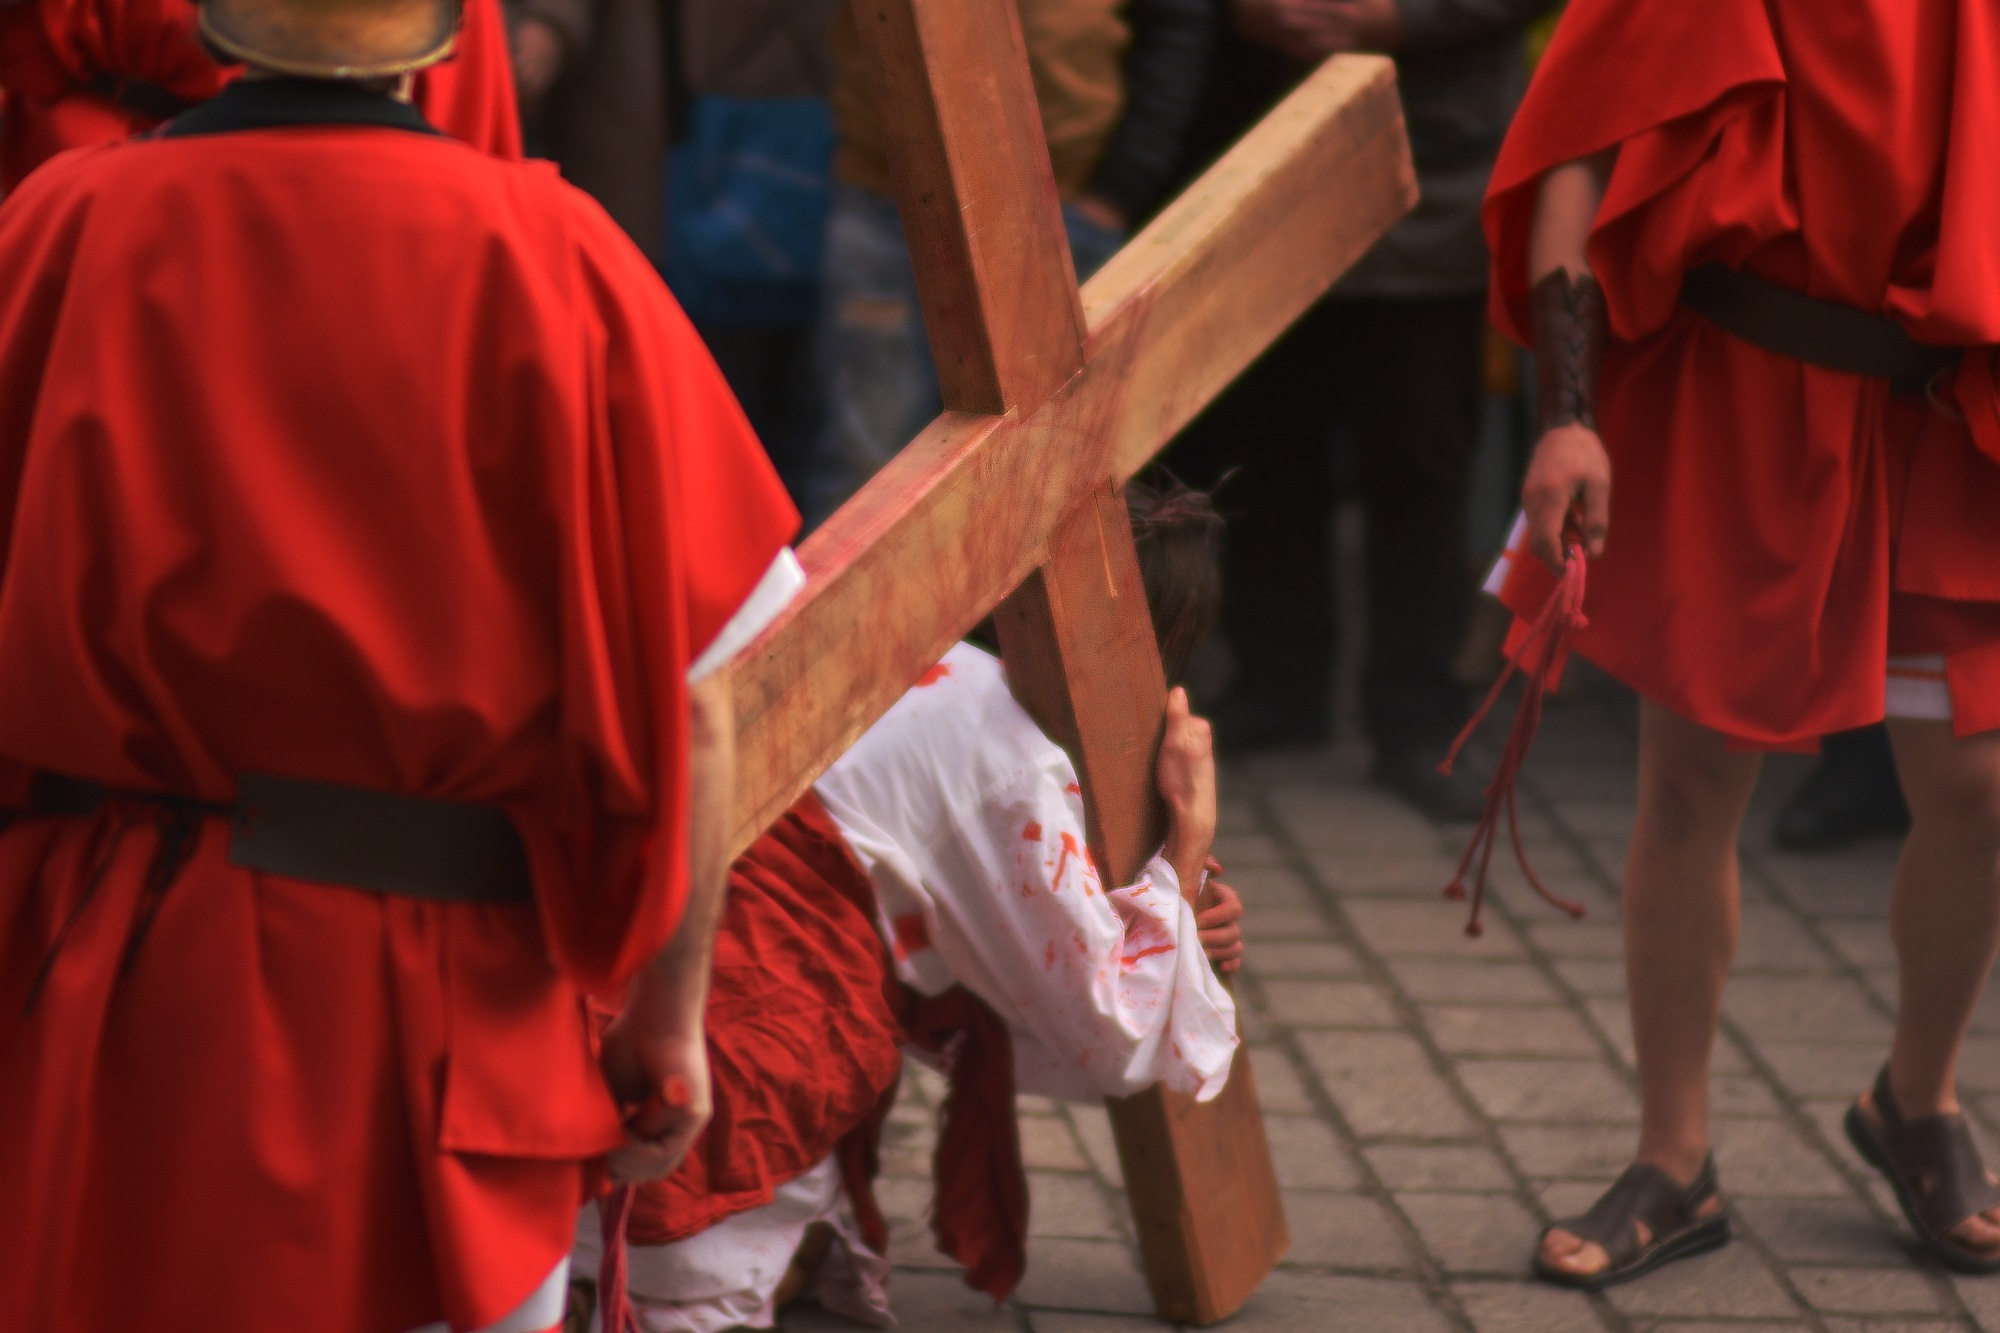 Calvary by PHOTOdistrict